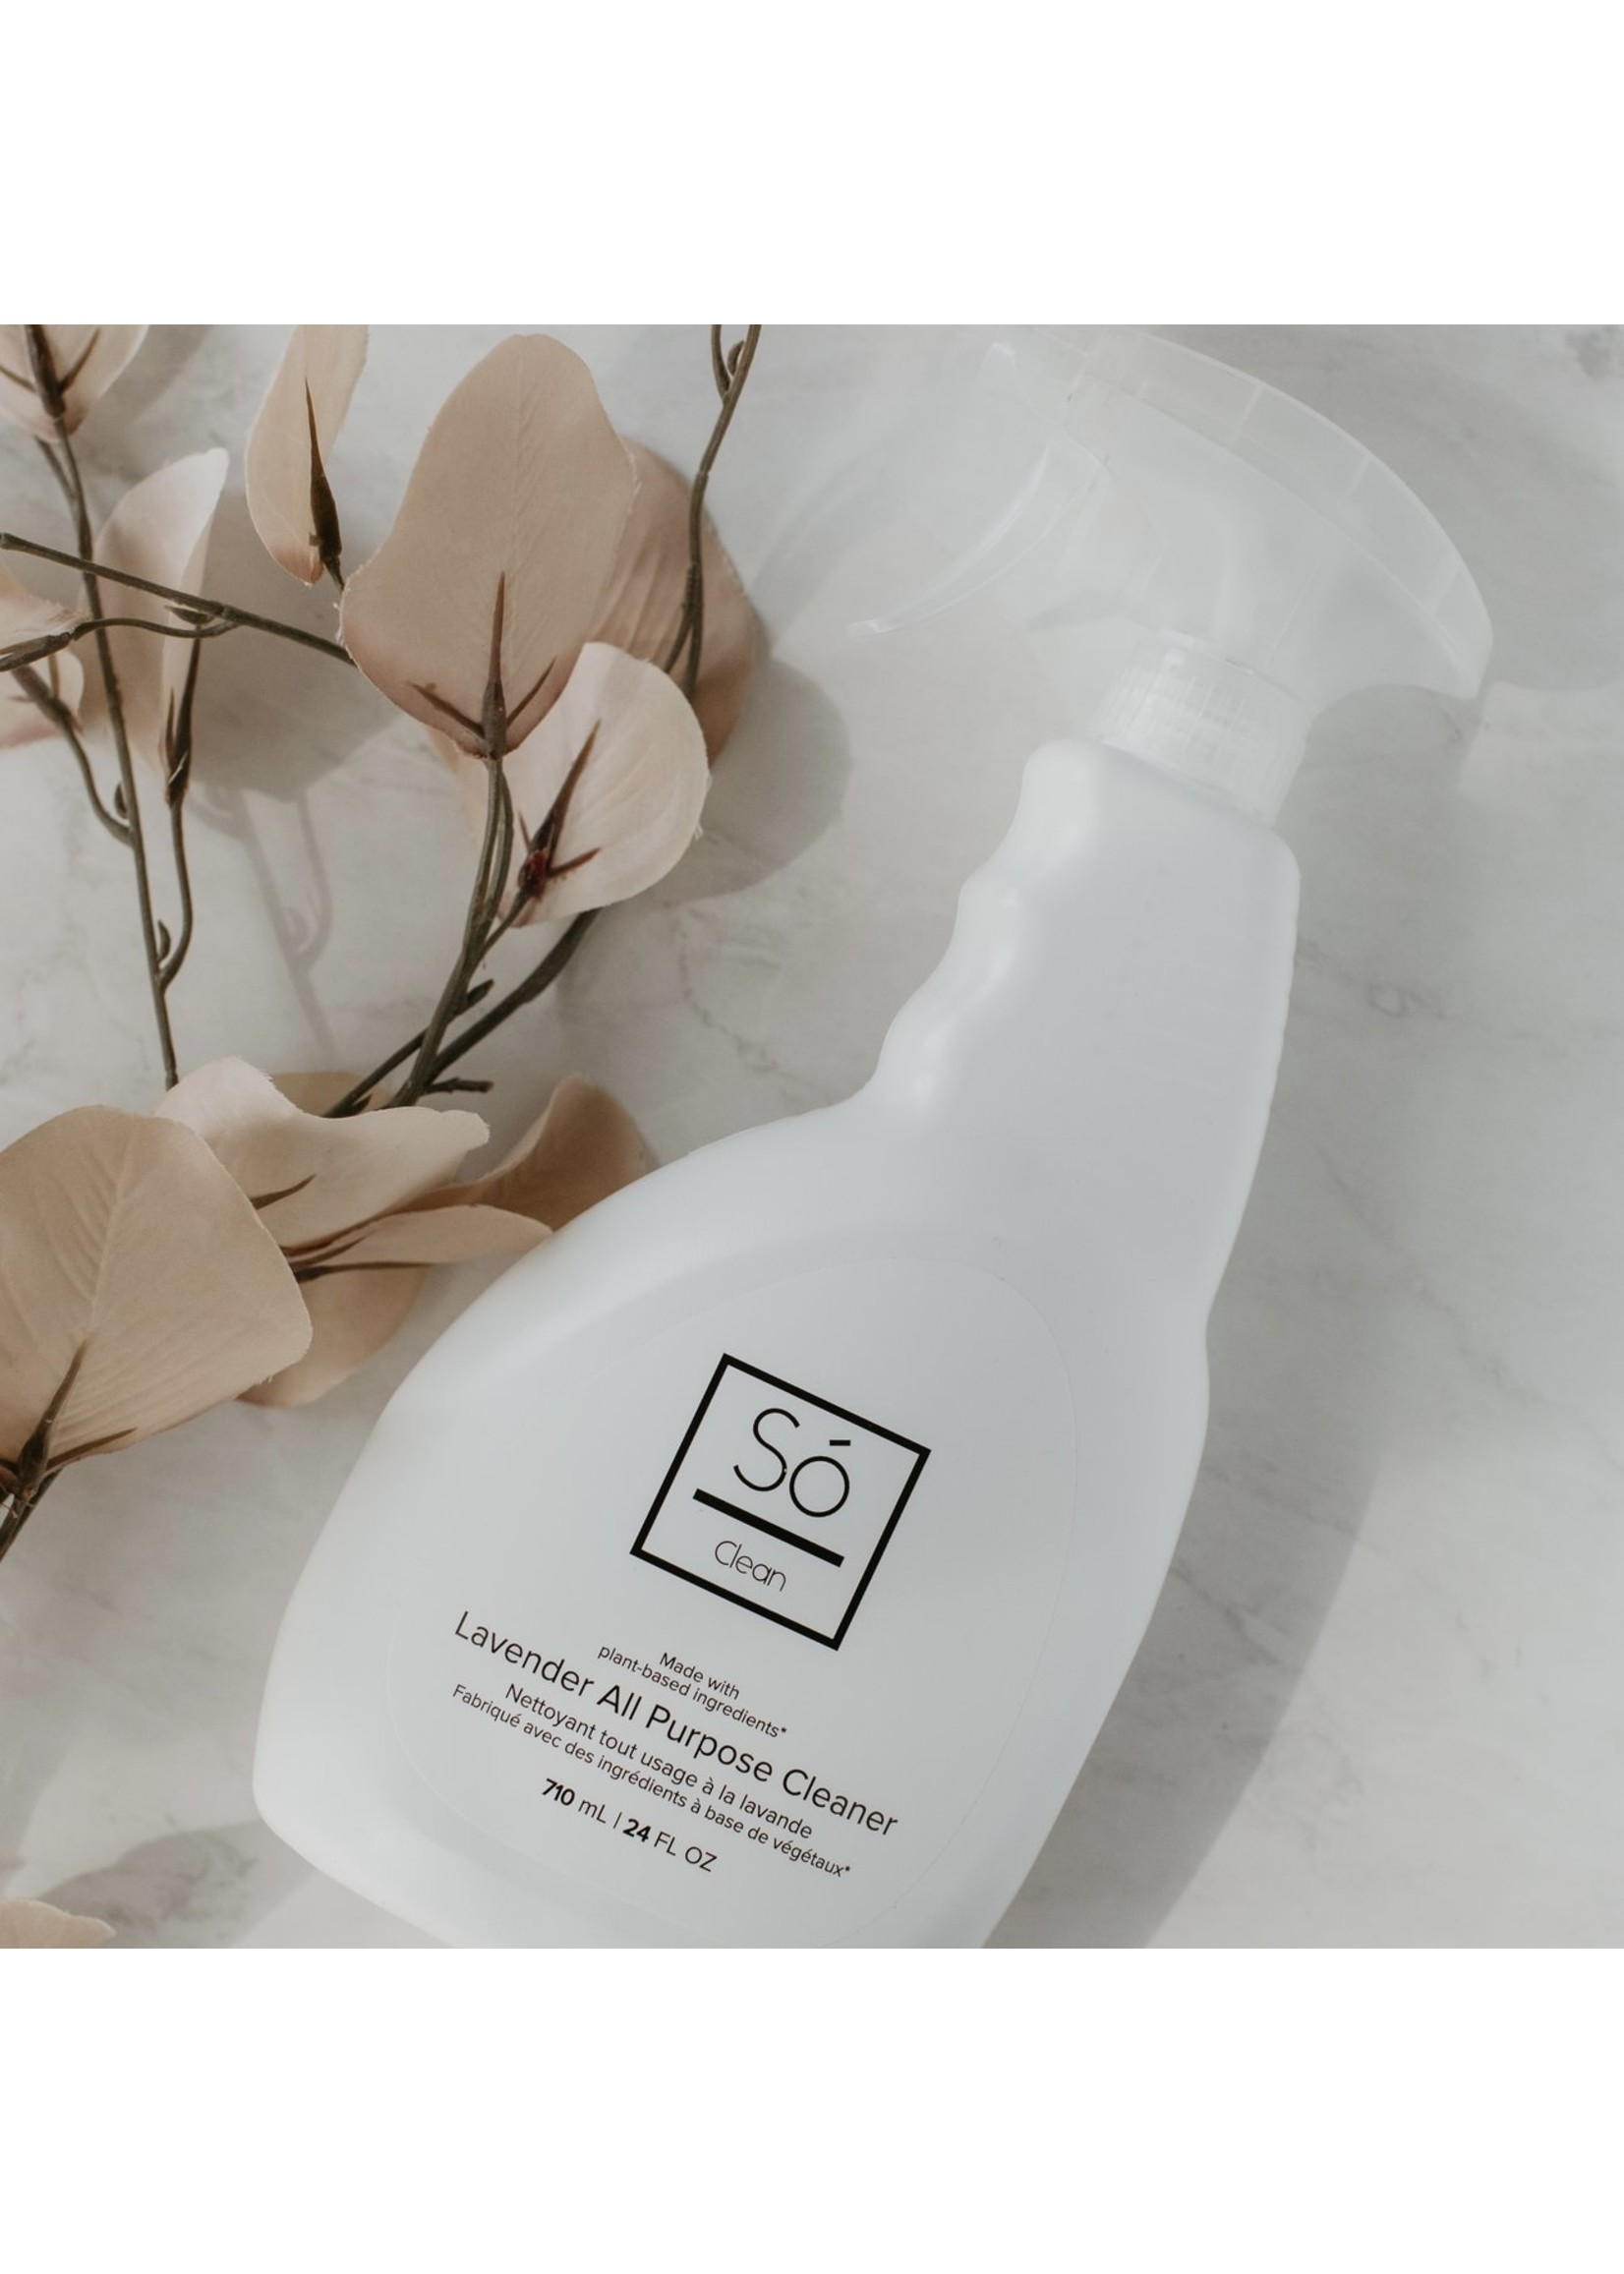 So Luxury Clean - Lavender All Purpose Cleaner